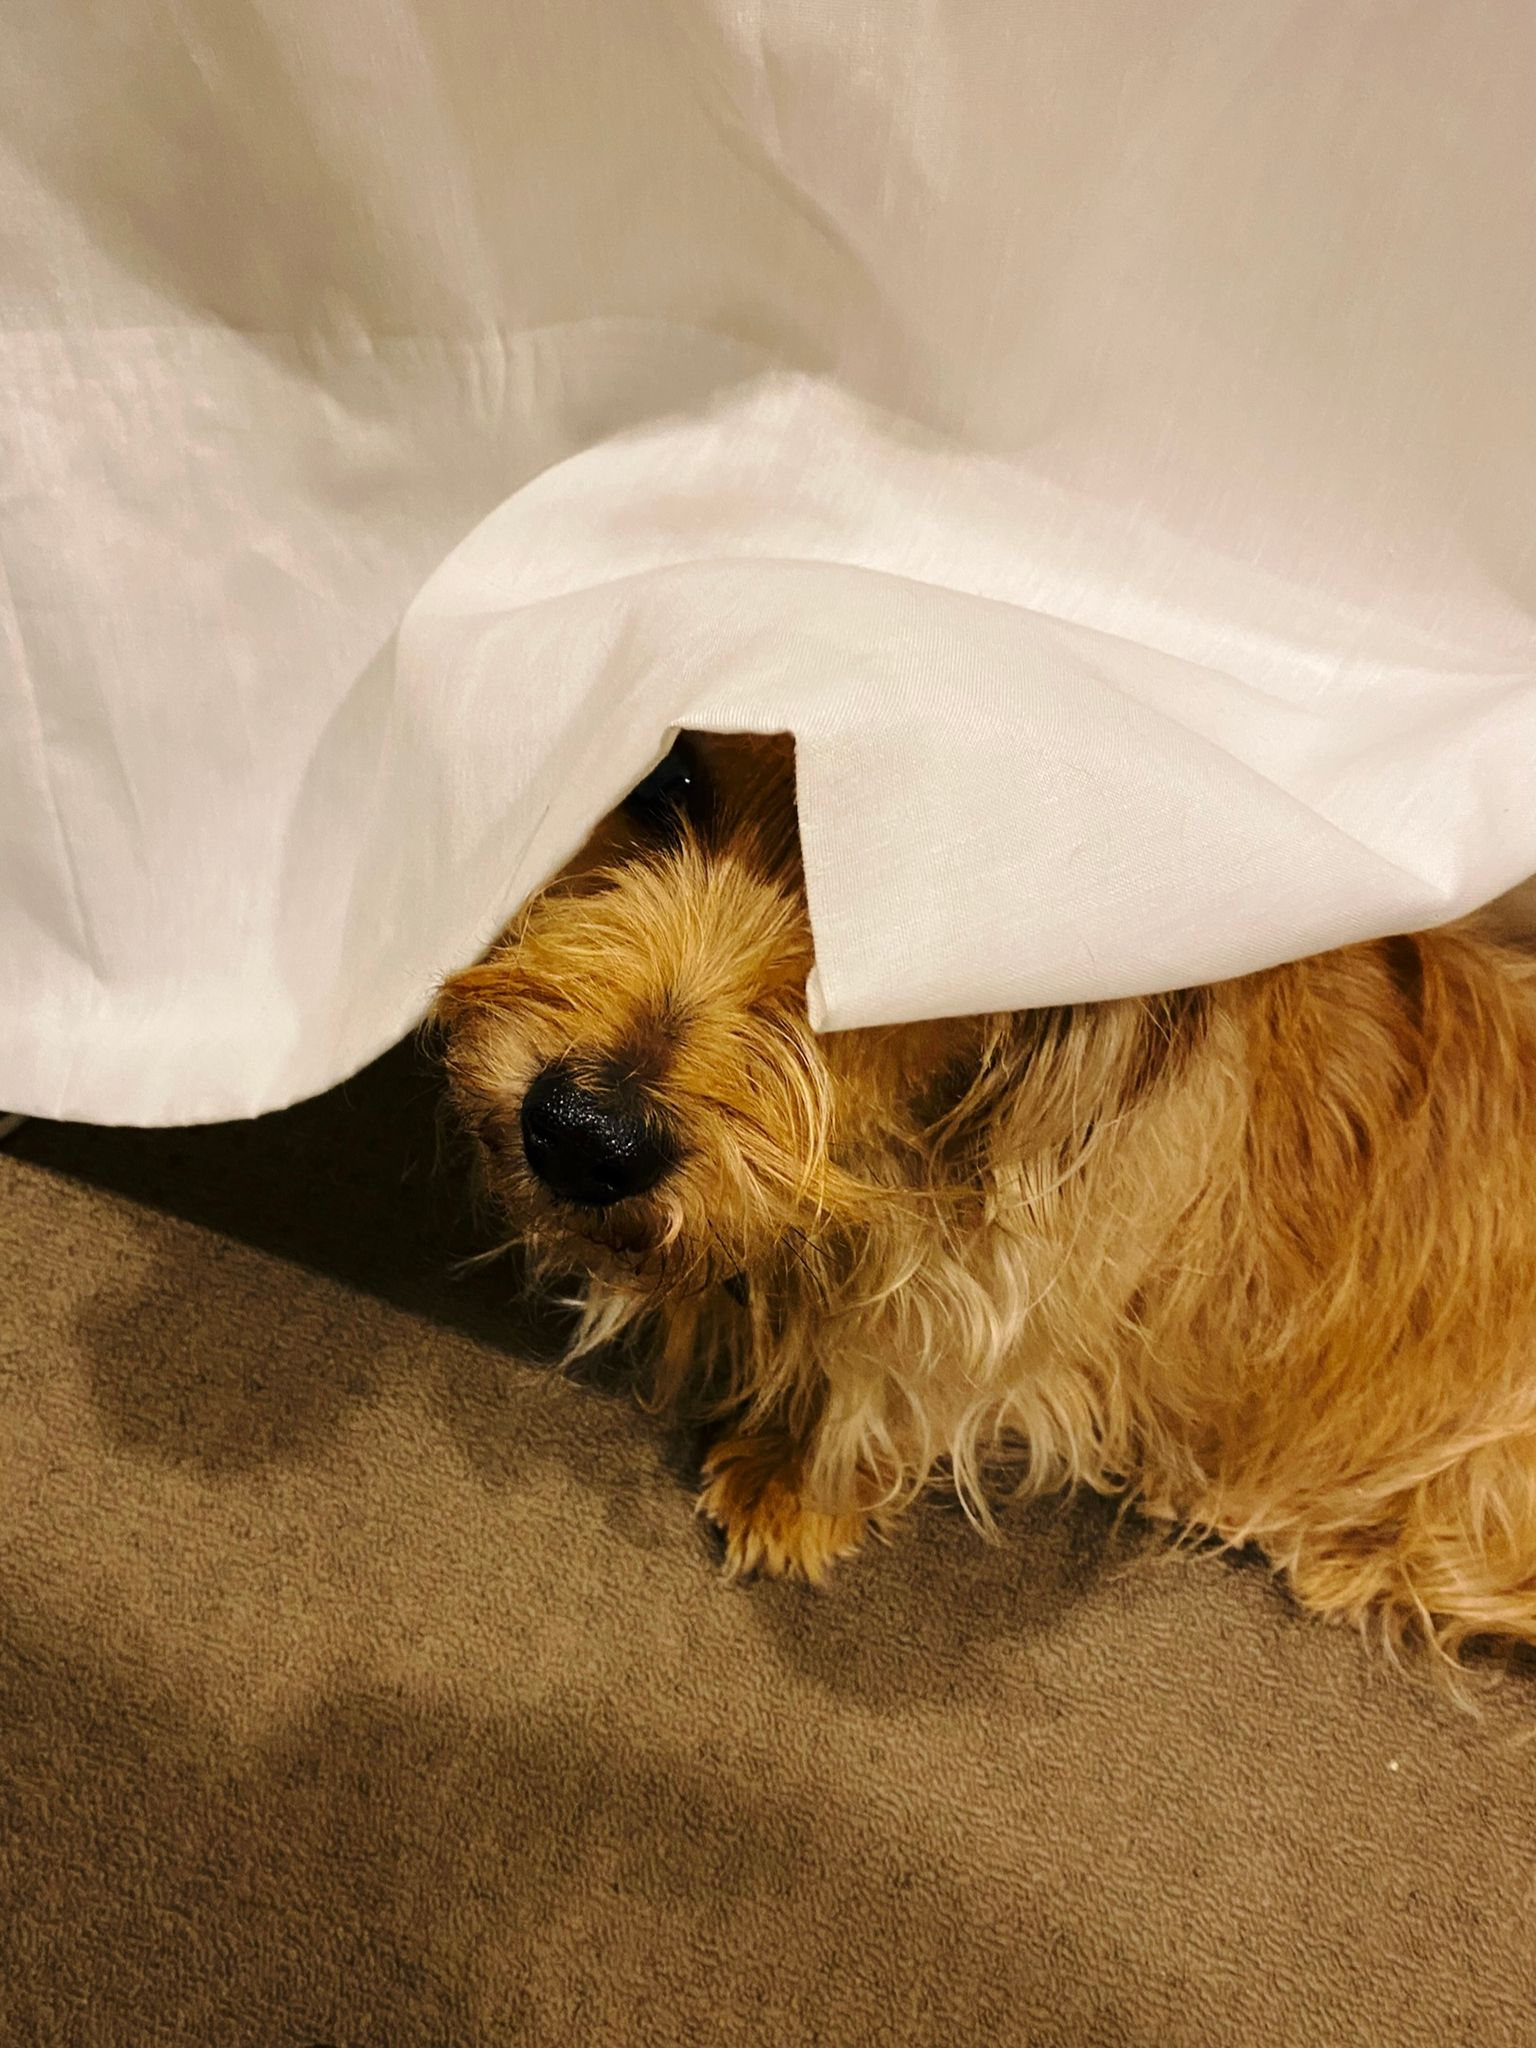 A photo of a small scruffy blonde dog sitting under a sheet white curtain, it's over his head in such a manner that it looks sort of like a nun's wimple.